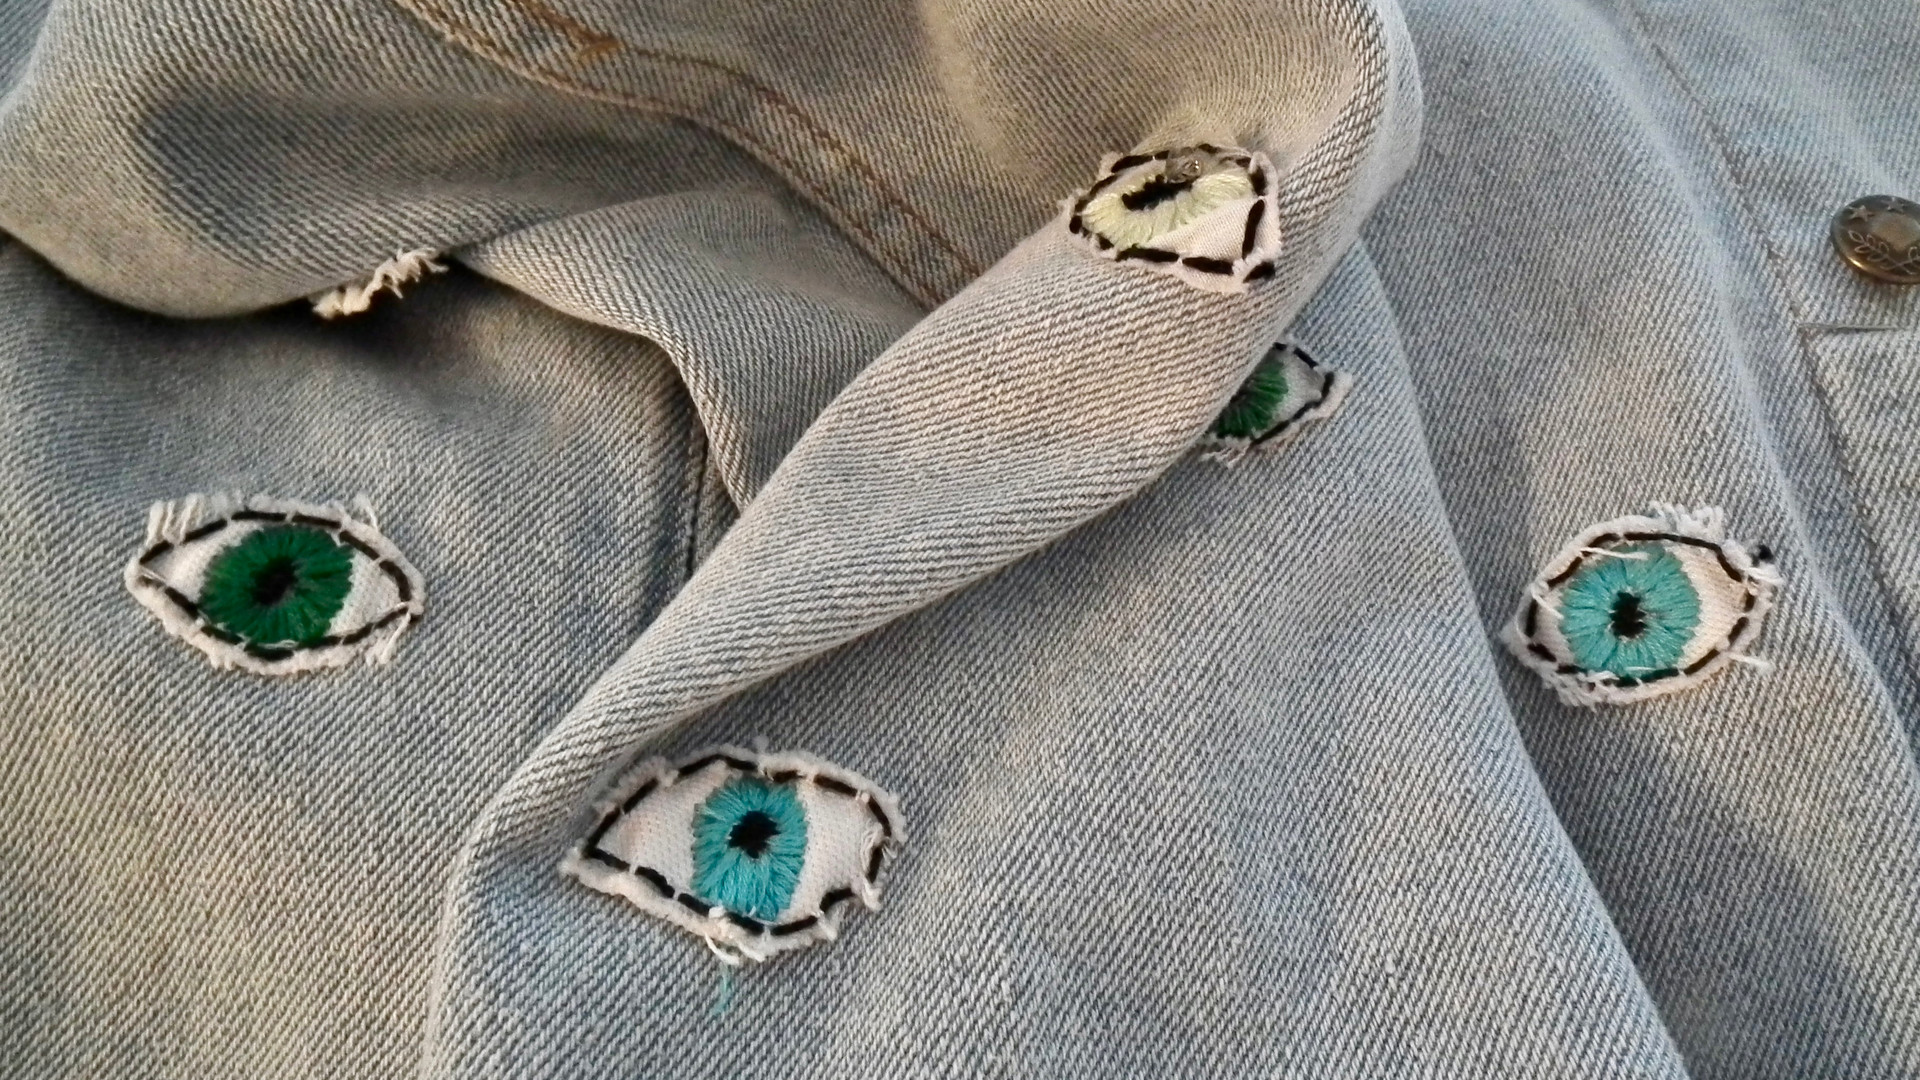 The All Seeing Eye Jacket